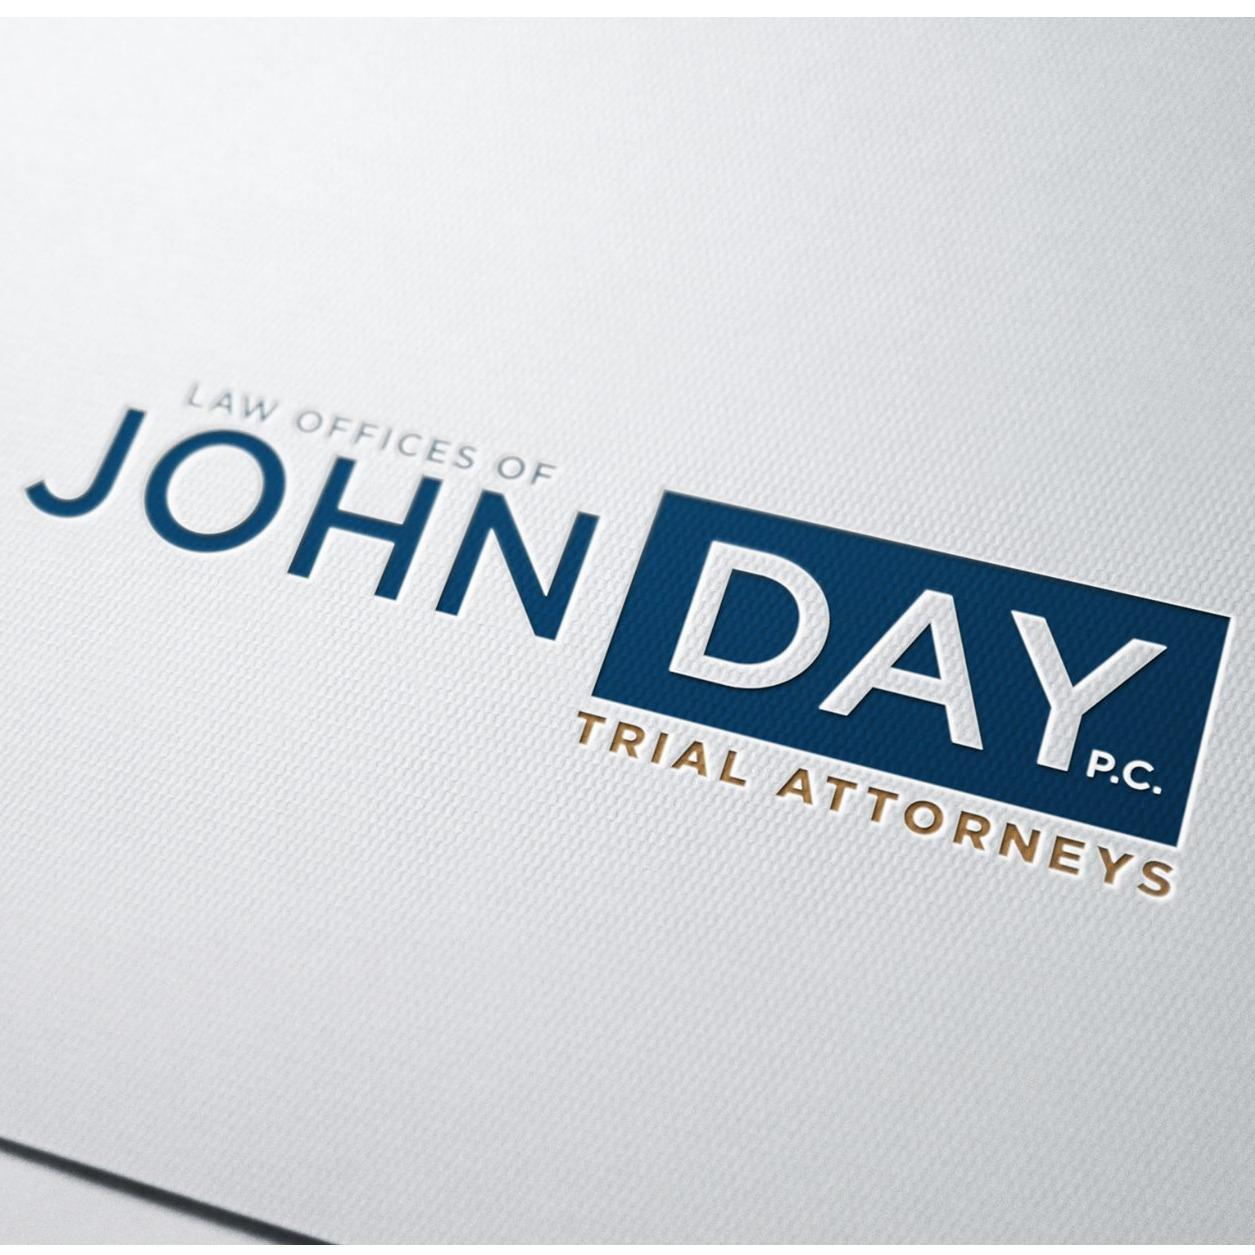 The Law Offices of John Day, PC